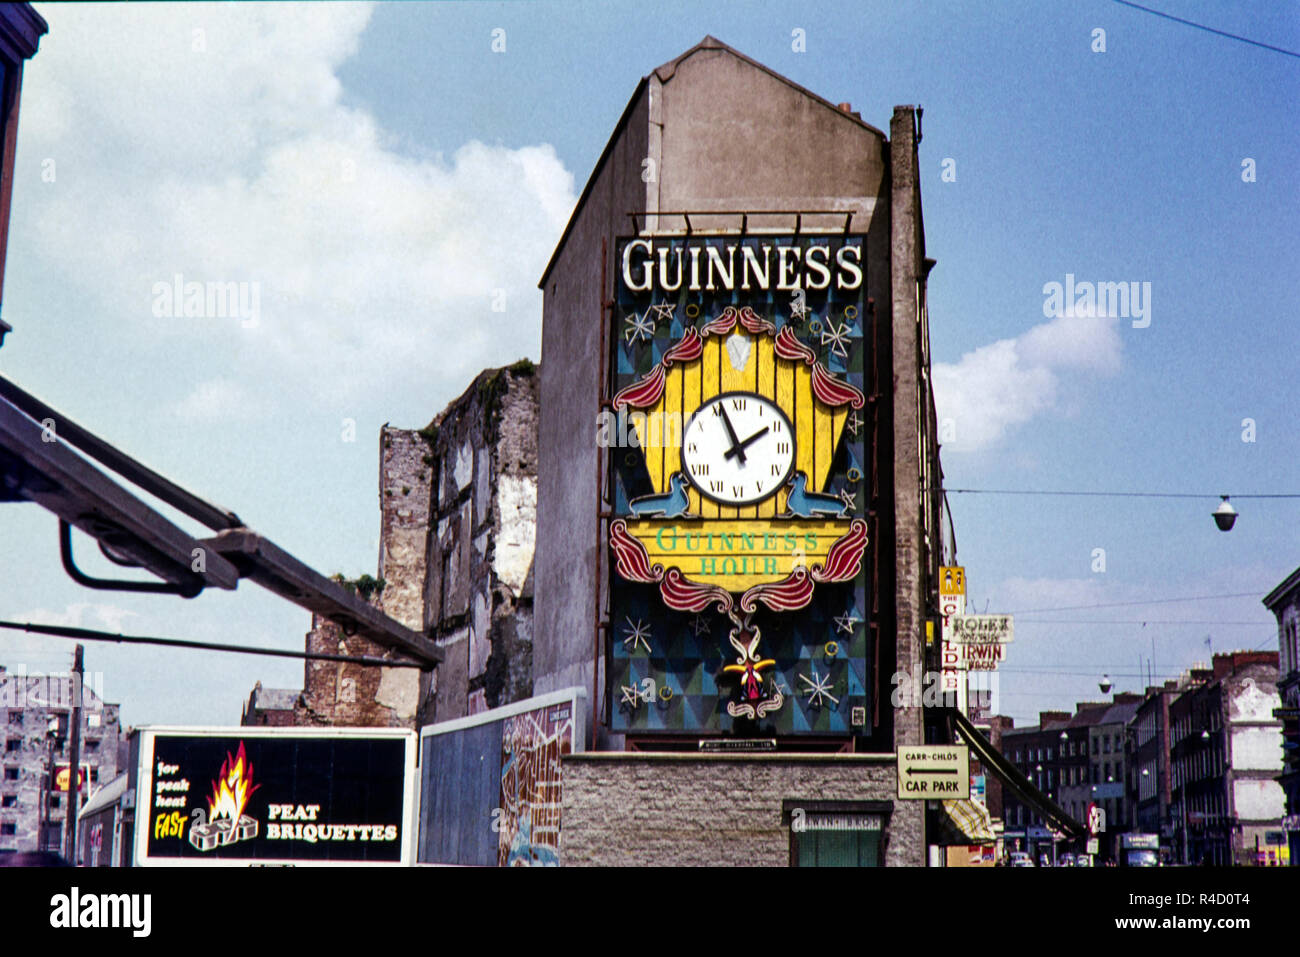 Guinness advertisement and clock on the side of Irwin Brothers watch and jewellery shop which opened in 1897 at 22 Patrick Street, (R445), Limerick, County Limerick, Ireland. The area has been regenerated since this original image taken within the 1960s but after looking on Google maps the shop now looks closed. - Stock Image